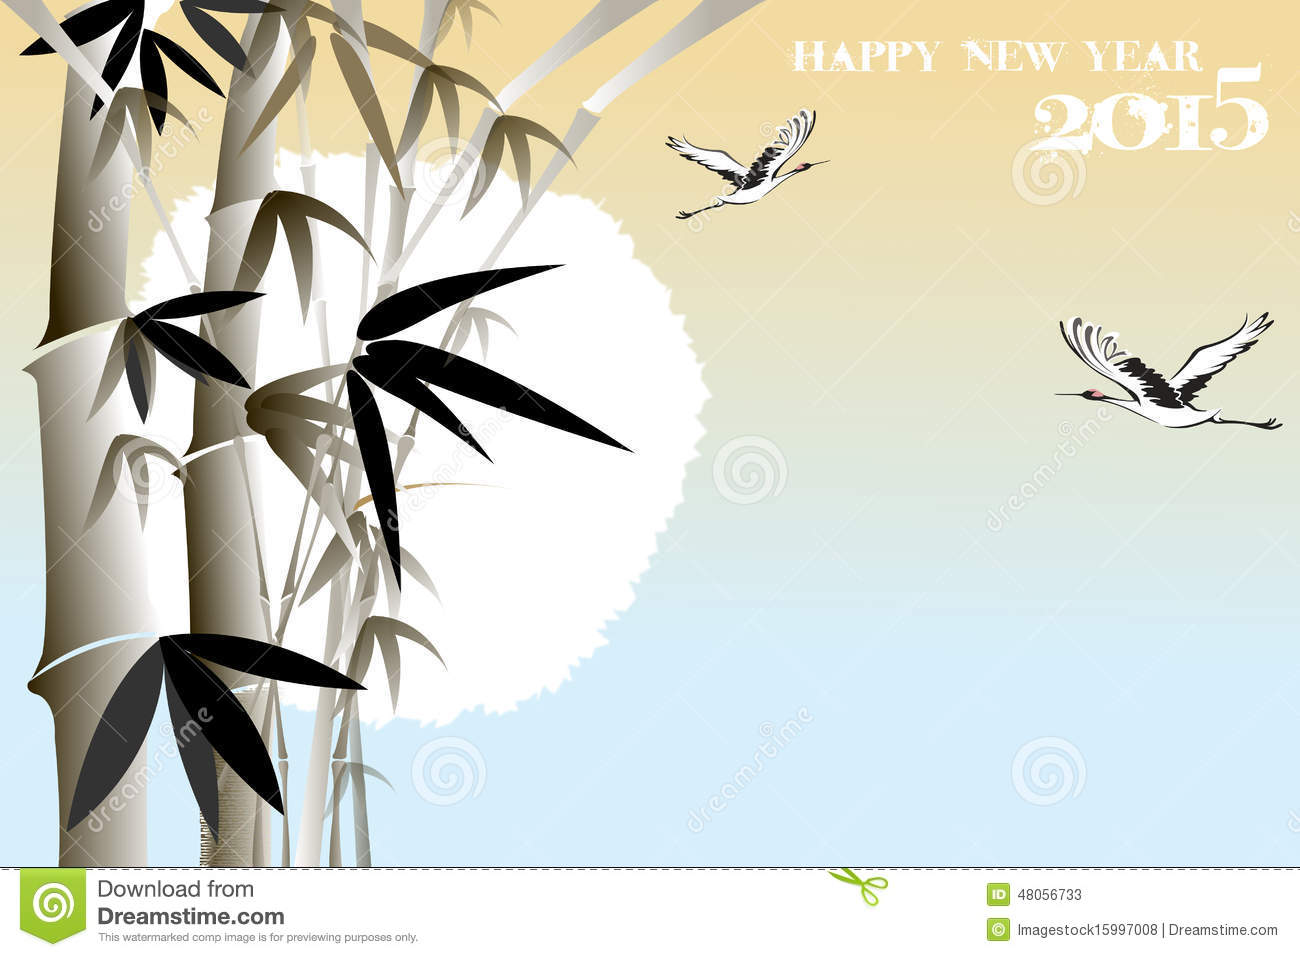 Bamboo birds stock illustrations 216 bamboo birds stock korean new year greeting card with bamboo eps10 illustration oriental new year greeting card m4hsunfo Images